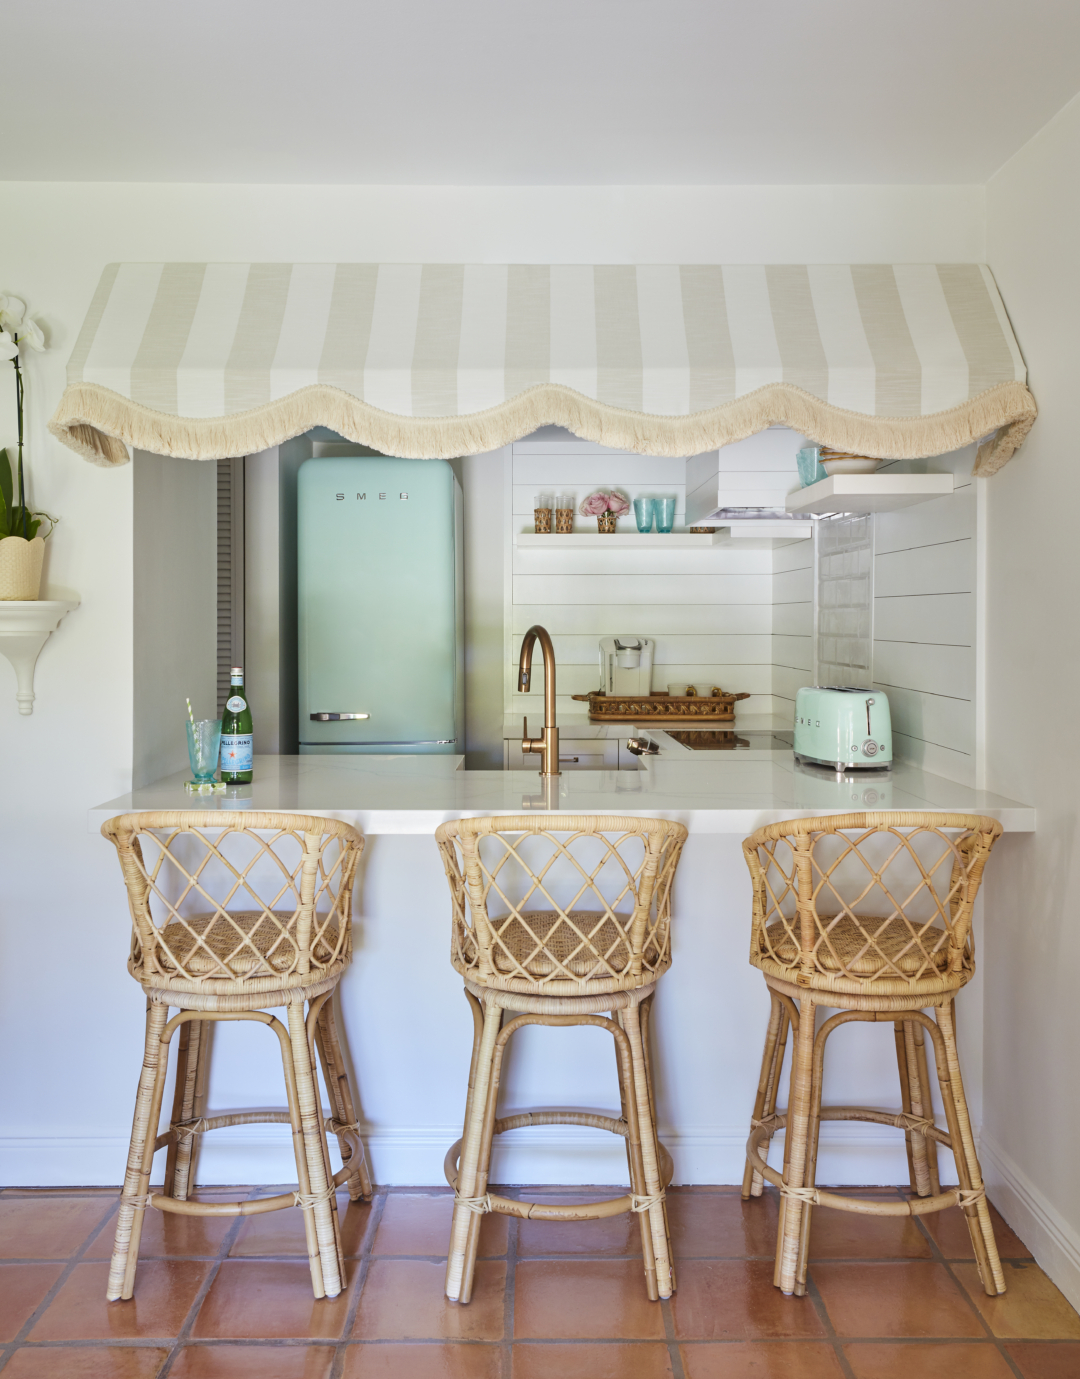 Sisters Suite by Serena & Lily and Palm Beach Lately at The Colony